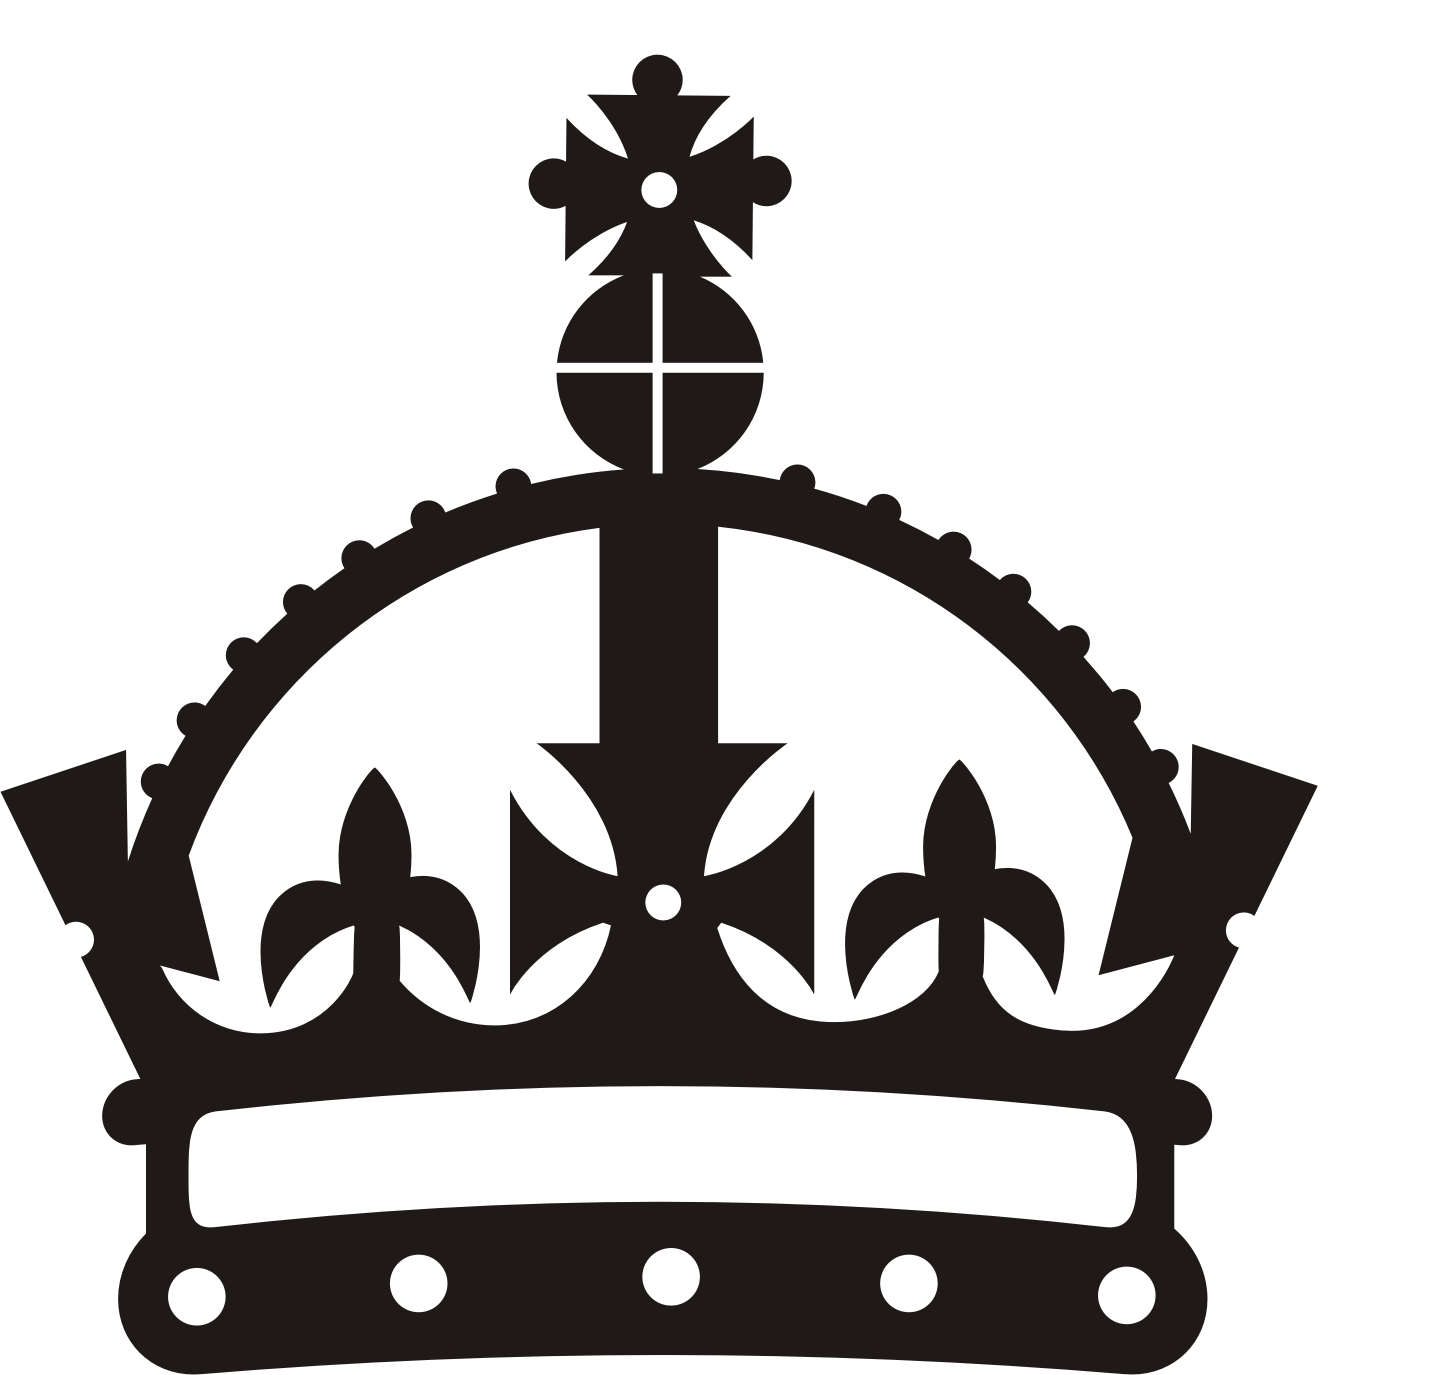 Clip Art: CROWN 02